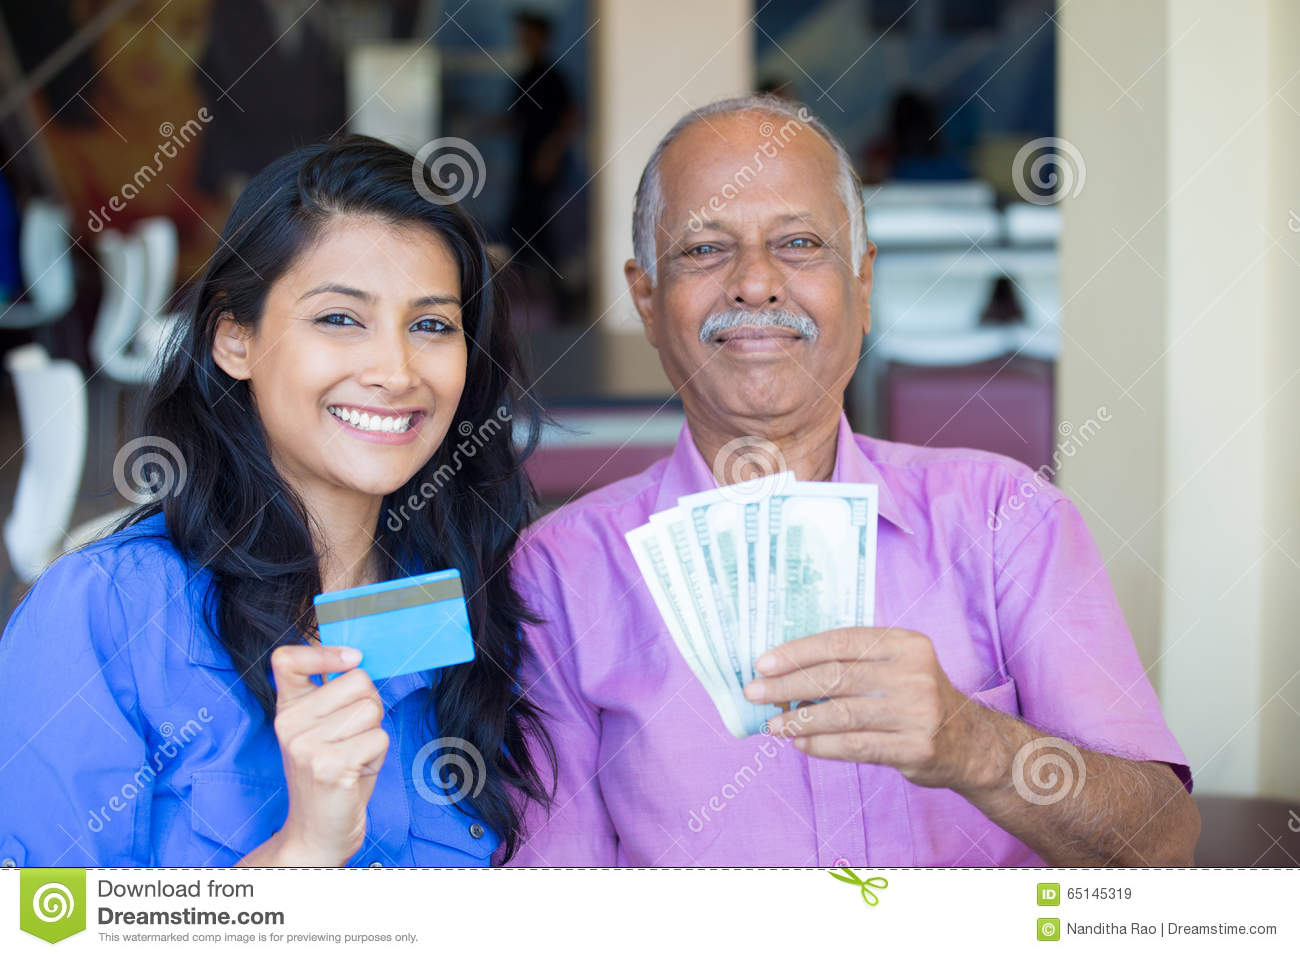 Stock illustrations senior citizen lady with a sign stock clipart - Cash Money Credit Exchange Stock Photo Image 65145319